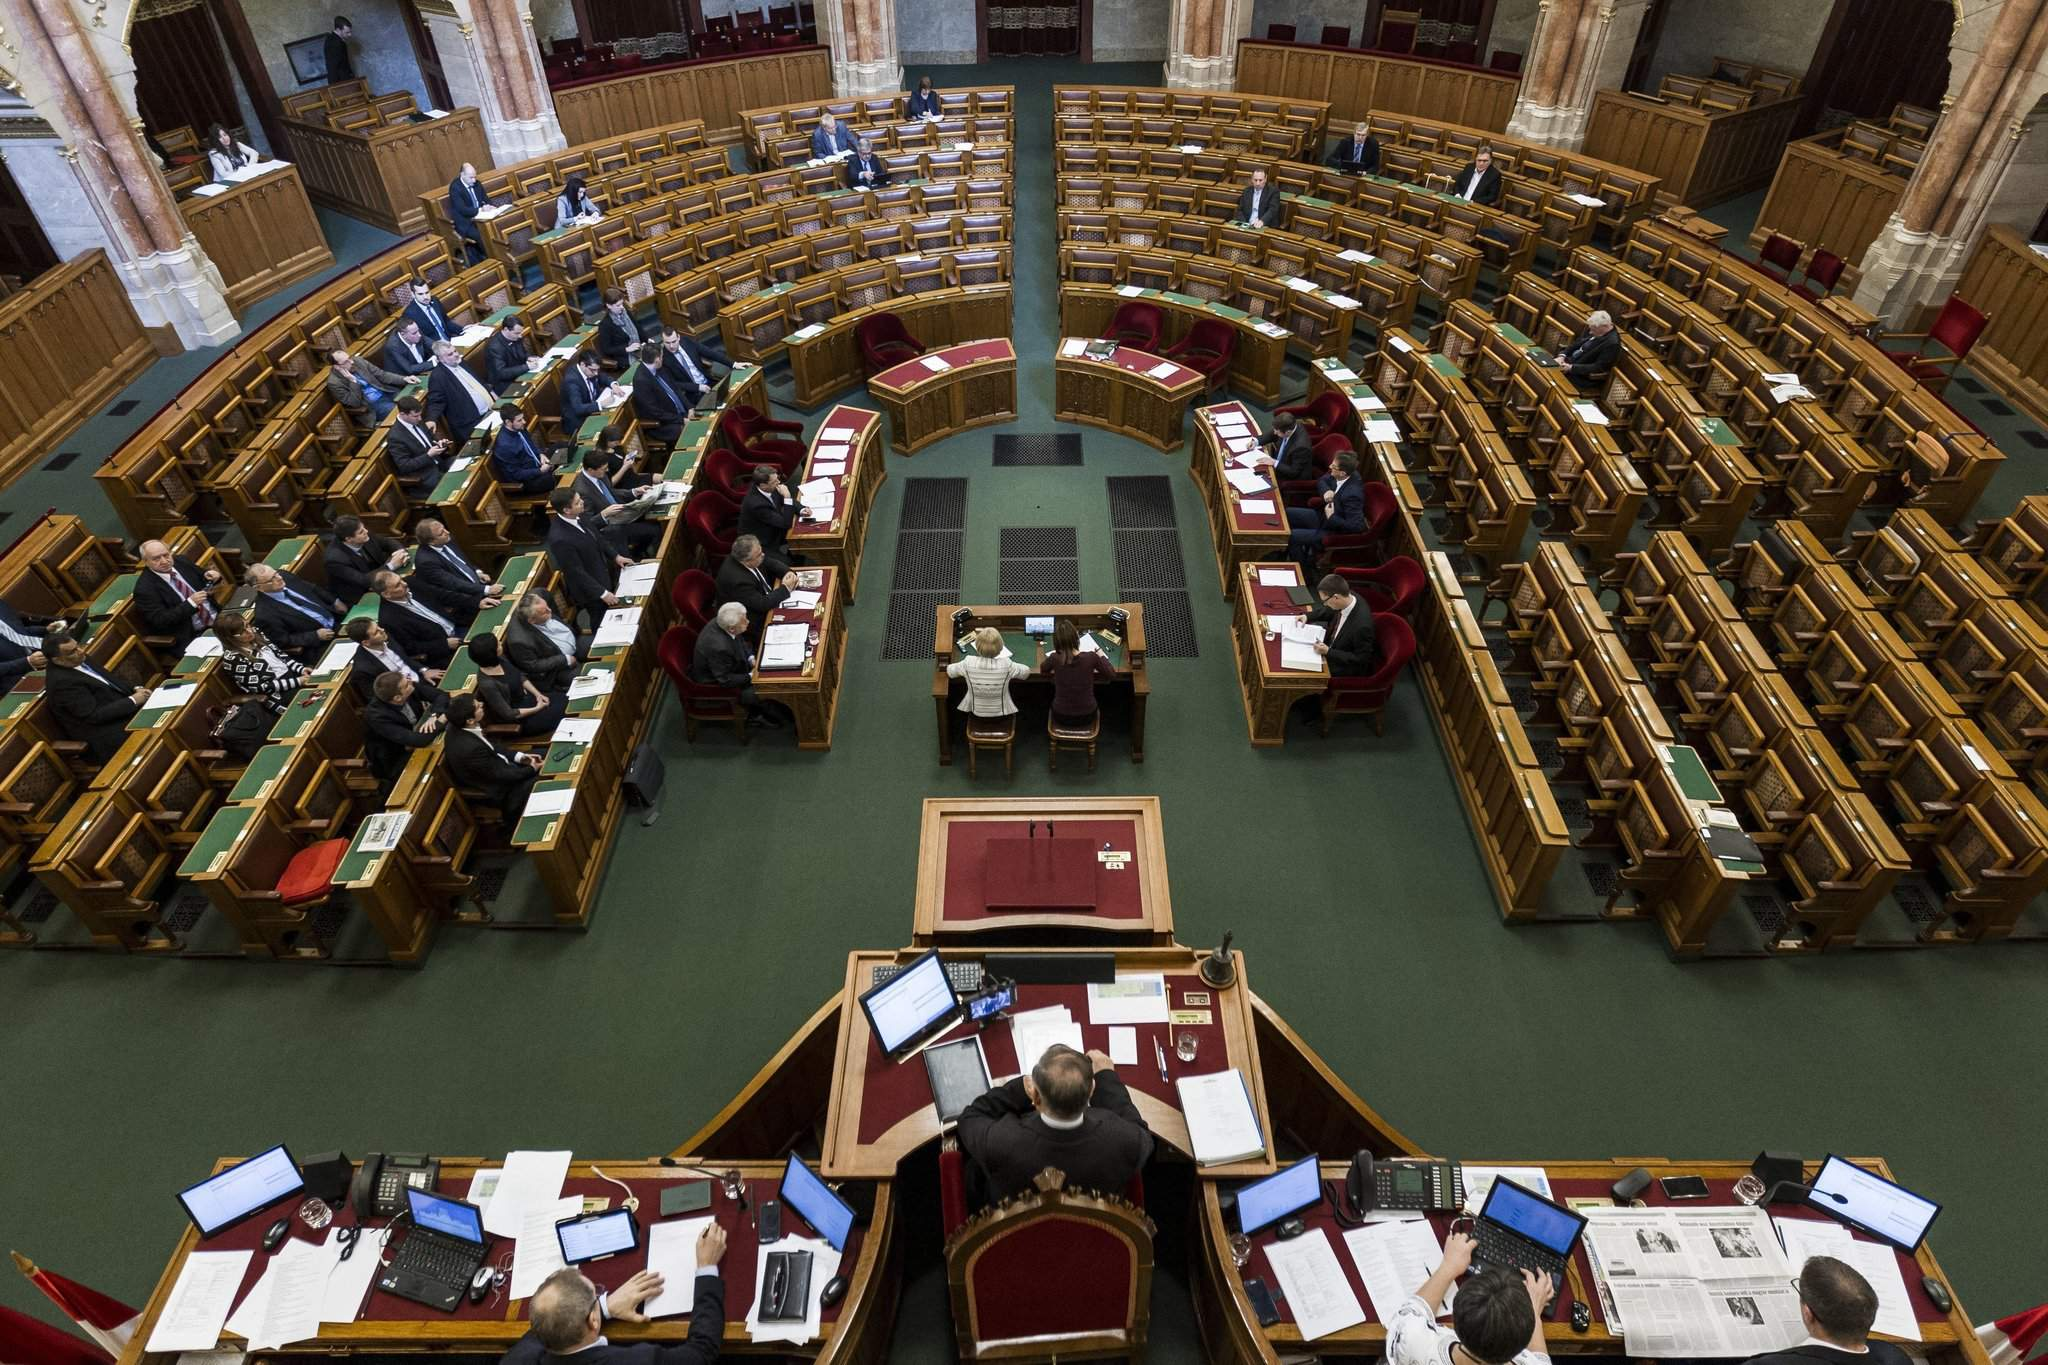 Border control tightening. Good Friday on parliament schedule next week – Daily News Hungary